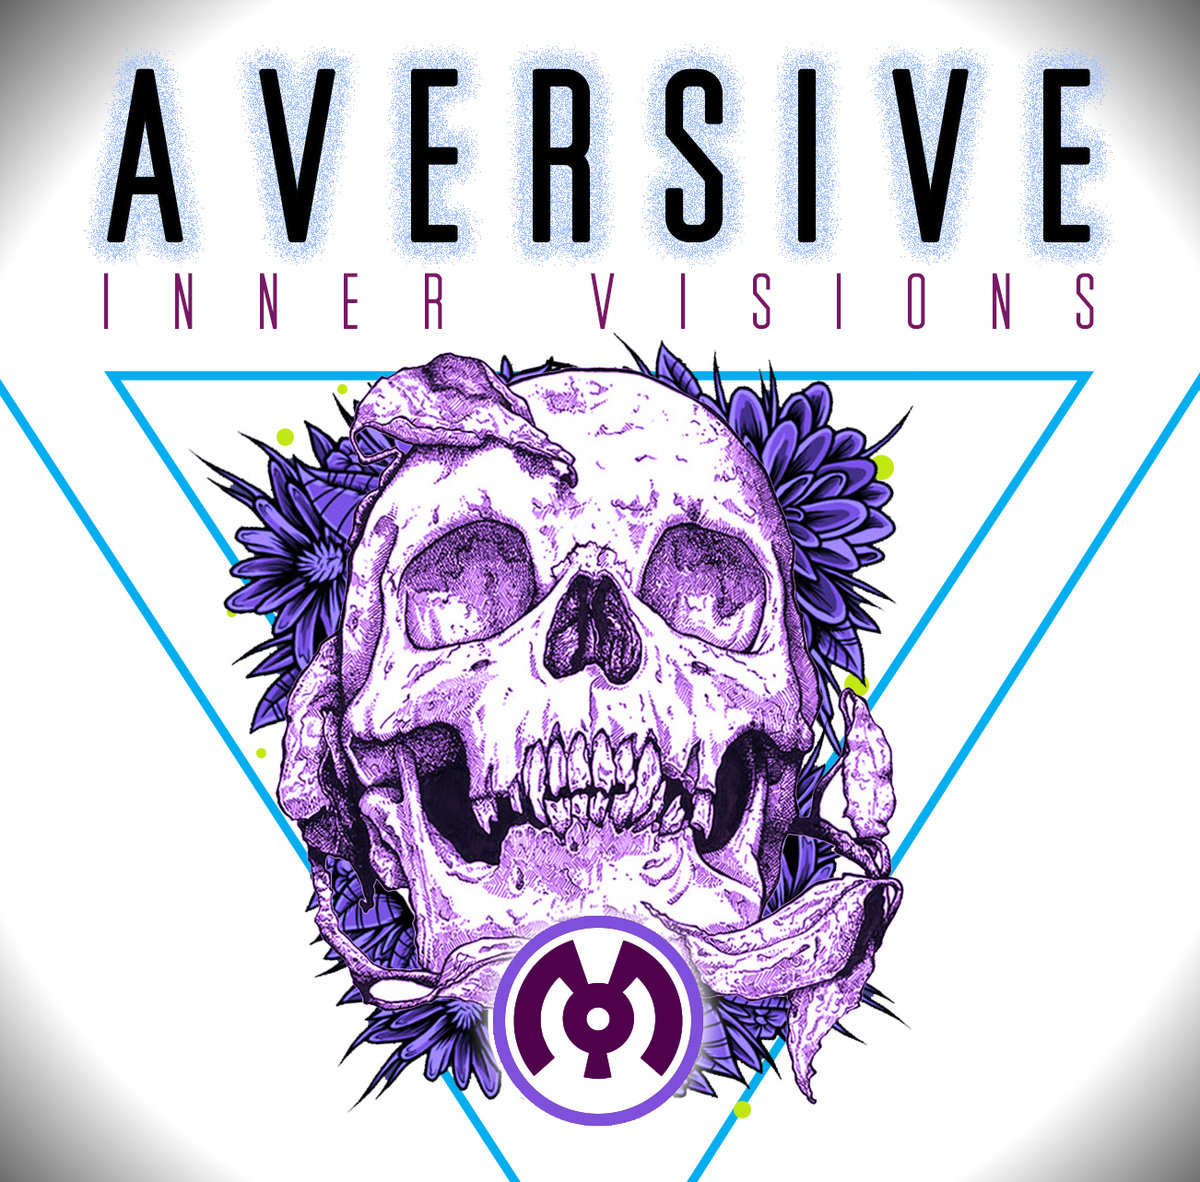 Aversive - Dreams @ 'Inner Visions' album (electronic, dubstep)